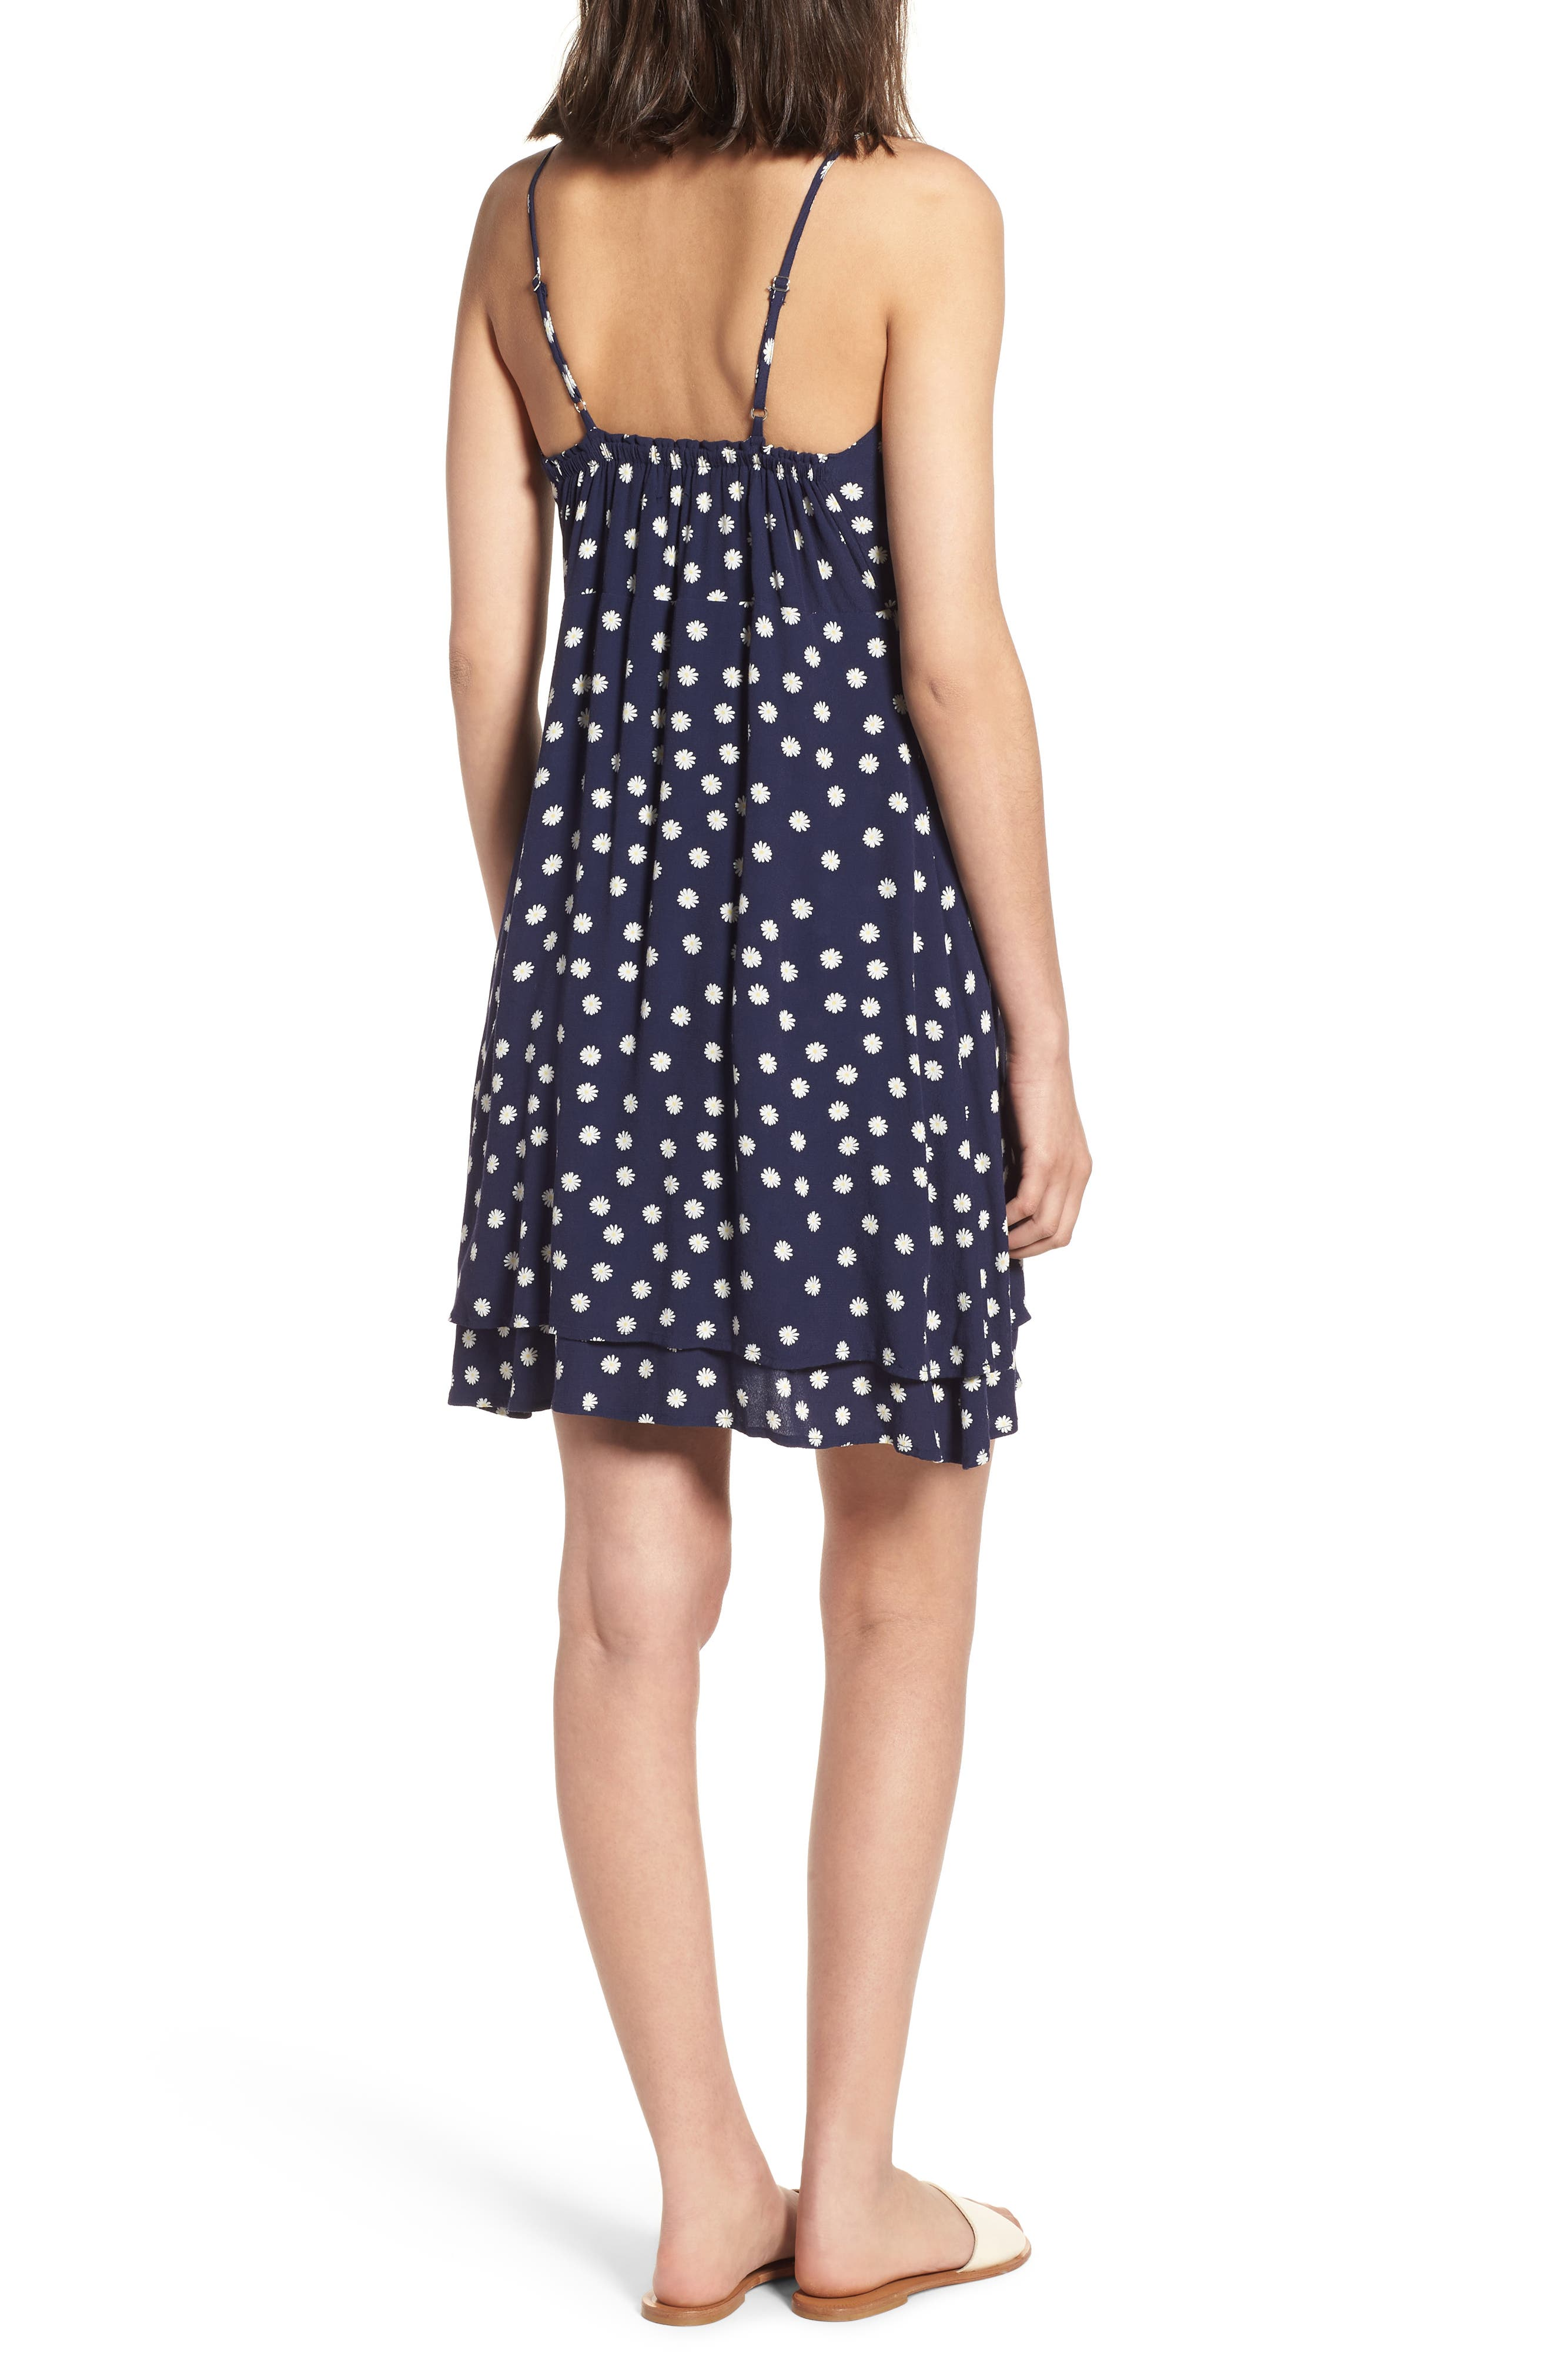 August Daisy Tie Front Dress,                             Alternate thumbnail 2, color,                             Navy Daisies